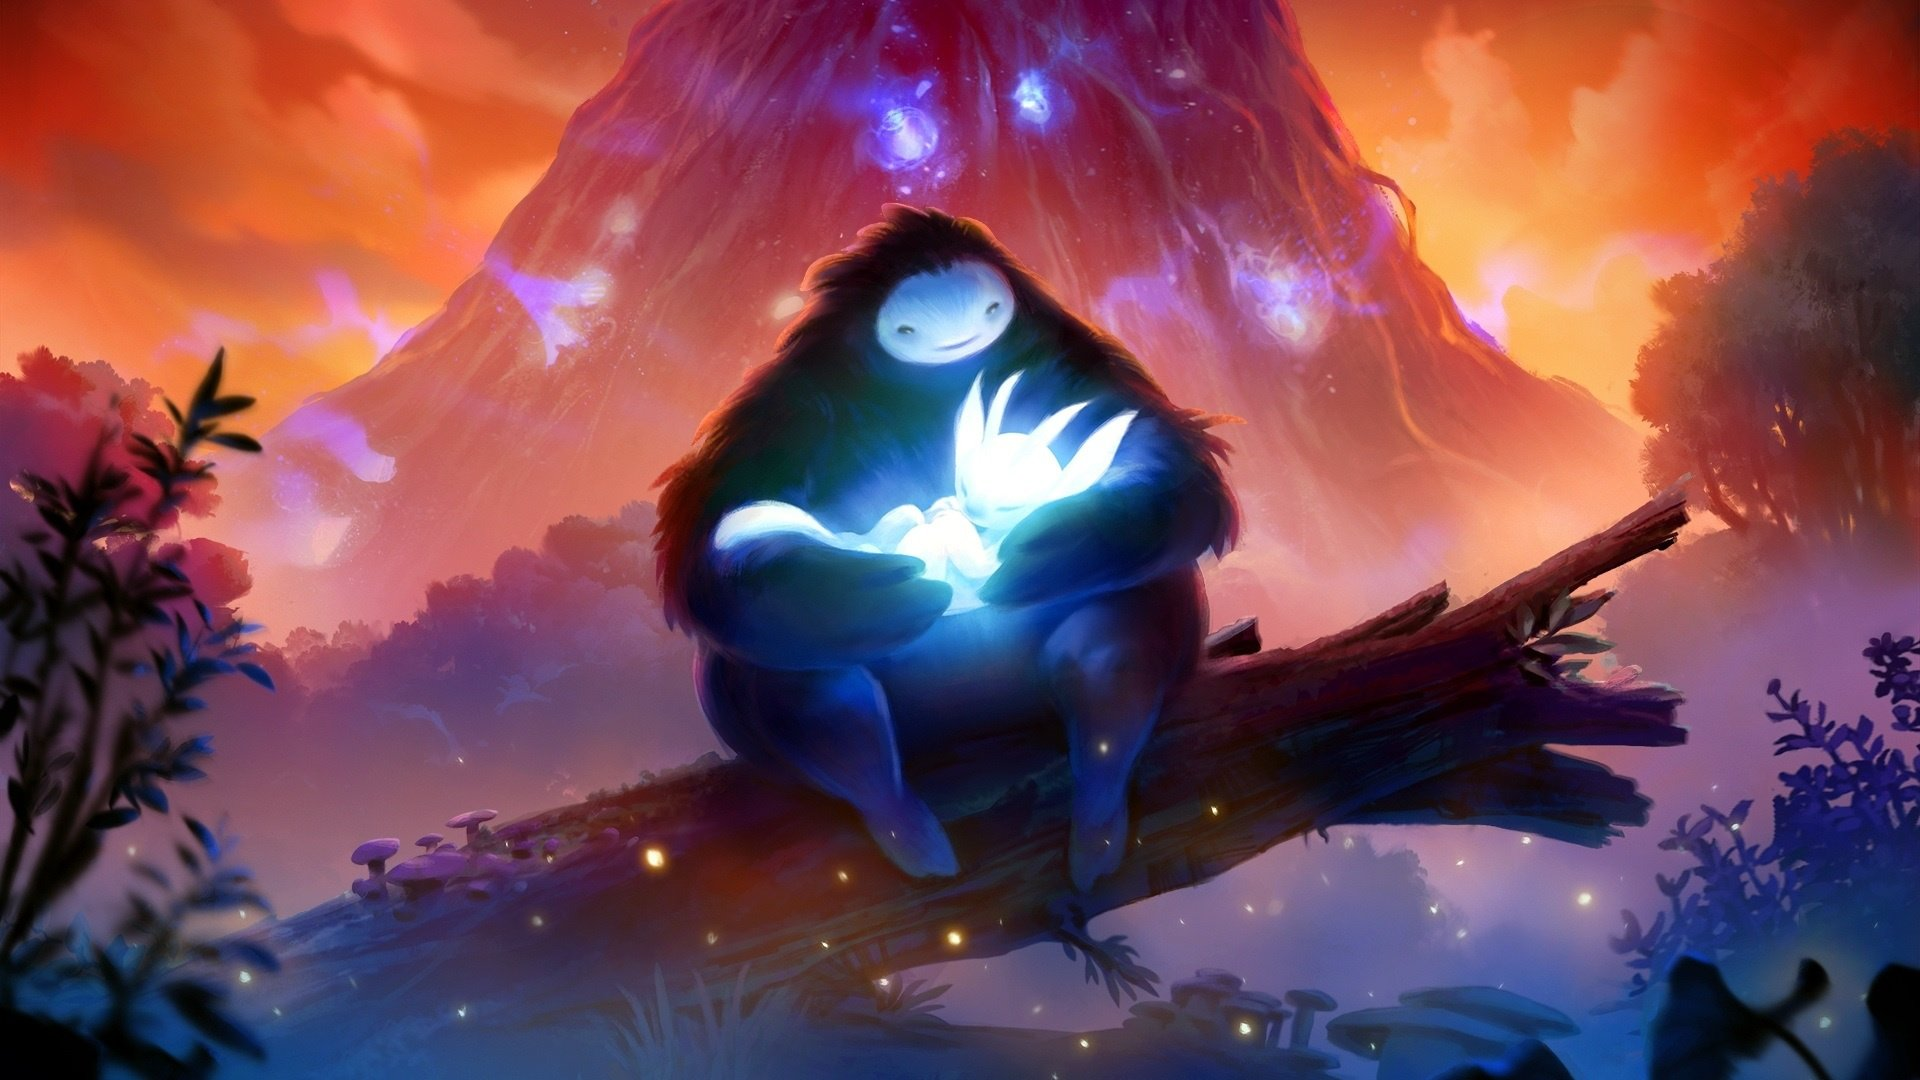 Demo Ori And The Blind Forest Before It Launches On The Switch Next Week